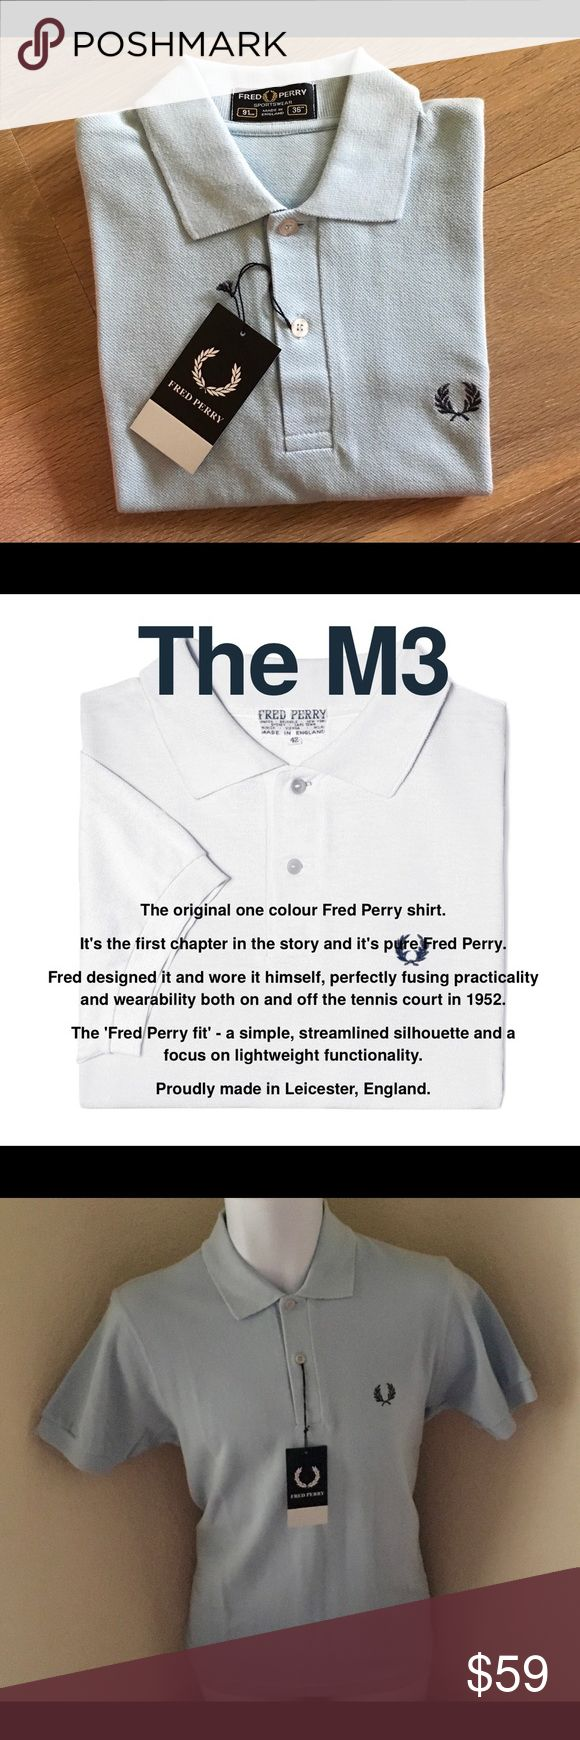 🎄New Fred Perry Original M3 Polo Shirt Small This is an original Fred Perry shirt made in England not China not the US.***AUTHENTIC*** purchased at Saks Fifth Avenue***This Shirt would make a HOT holiday gift🎁 Fred Perry Shirts Polos